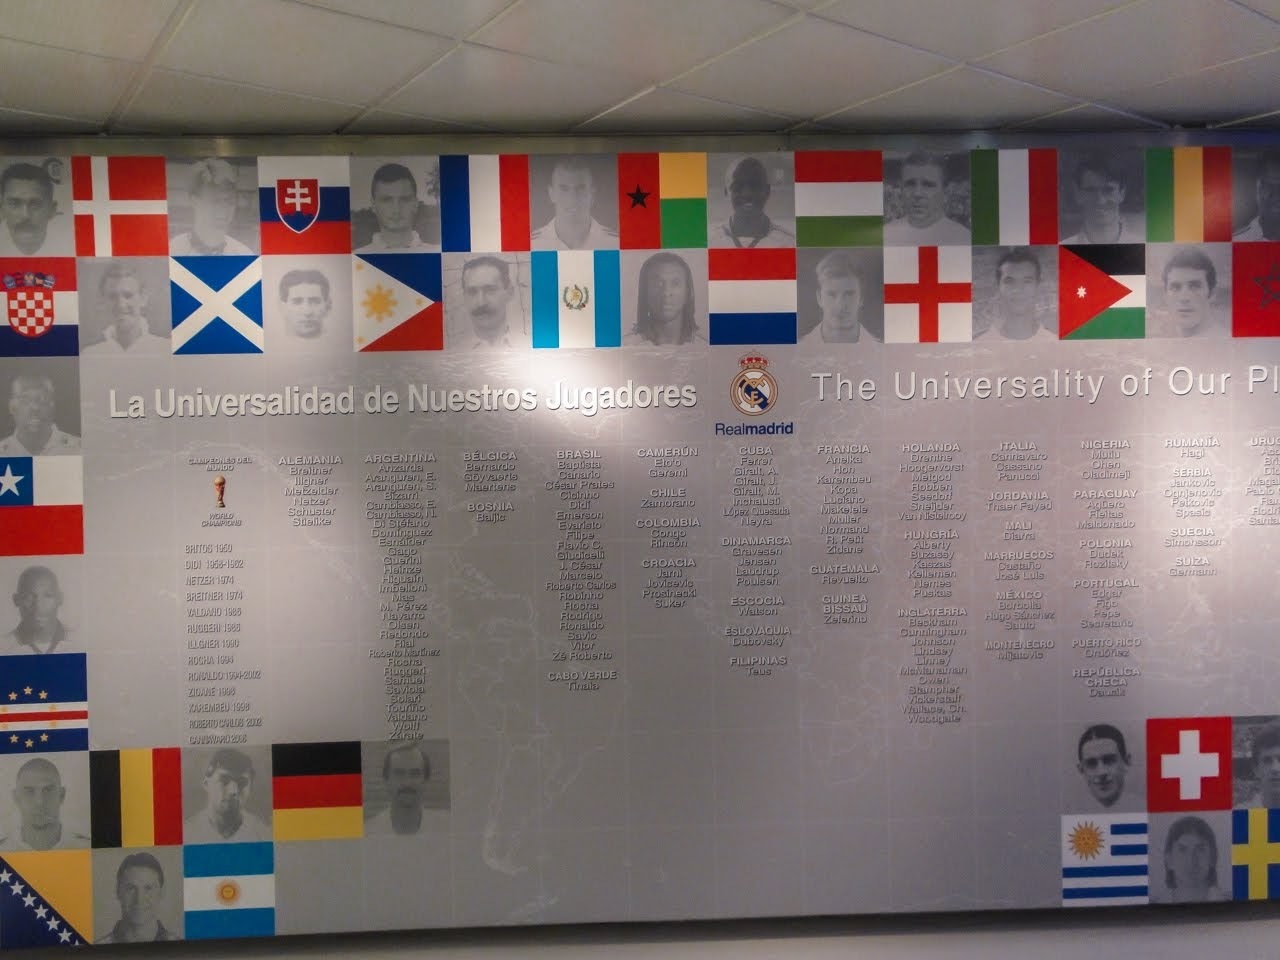 A wall namming many of the international players who have played for Real Madrid